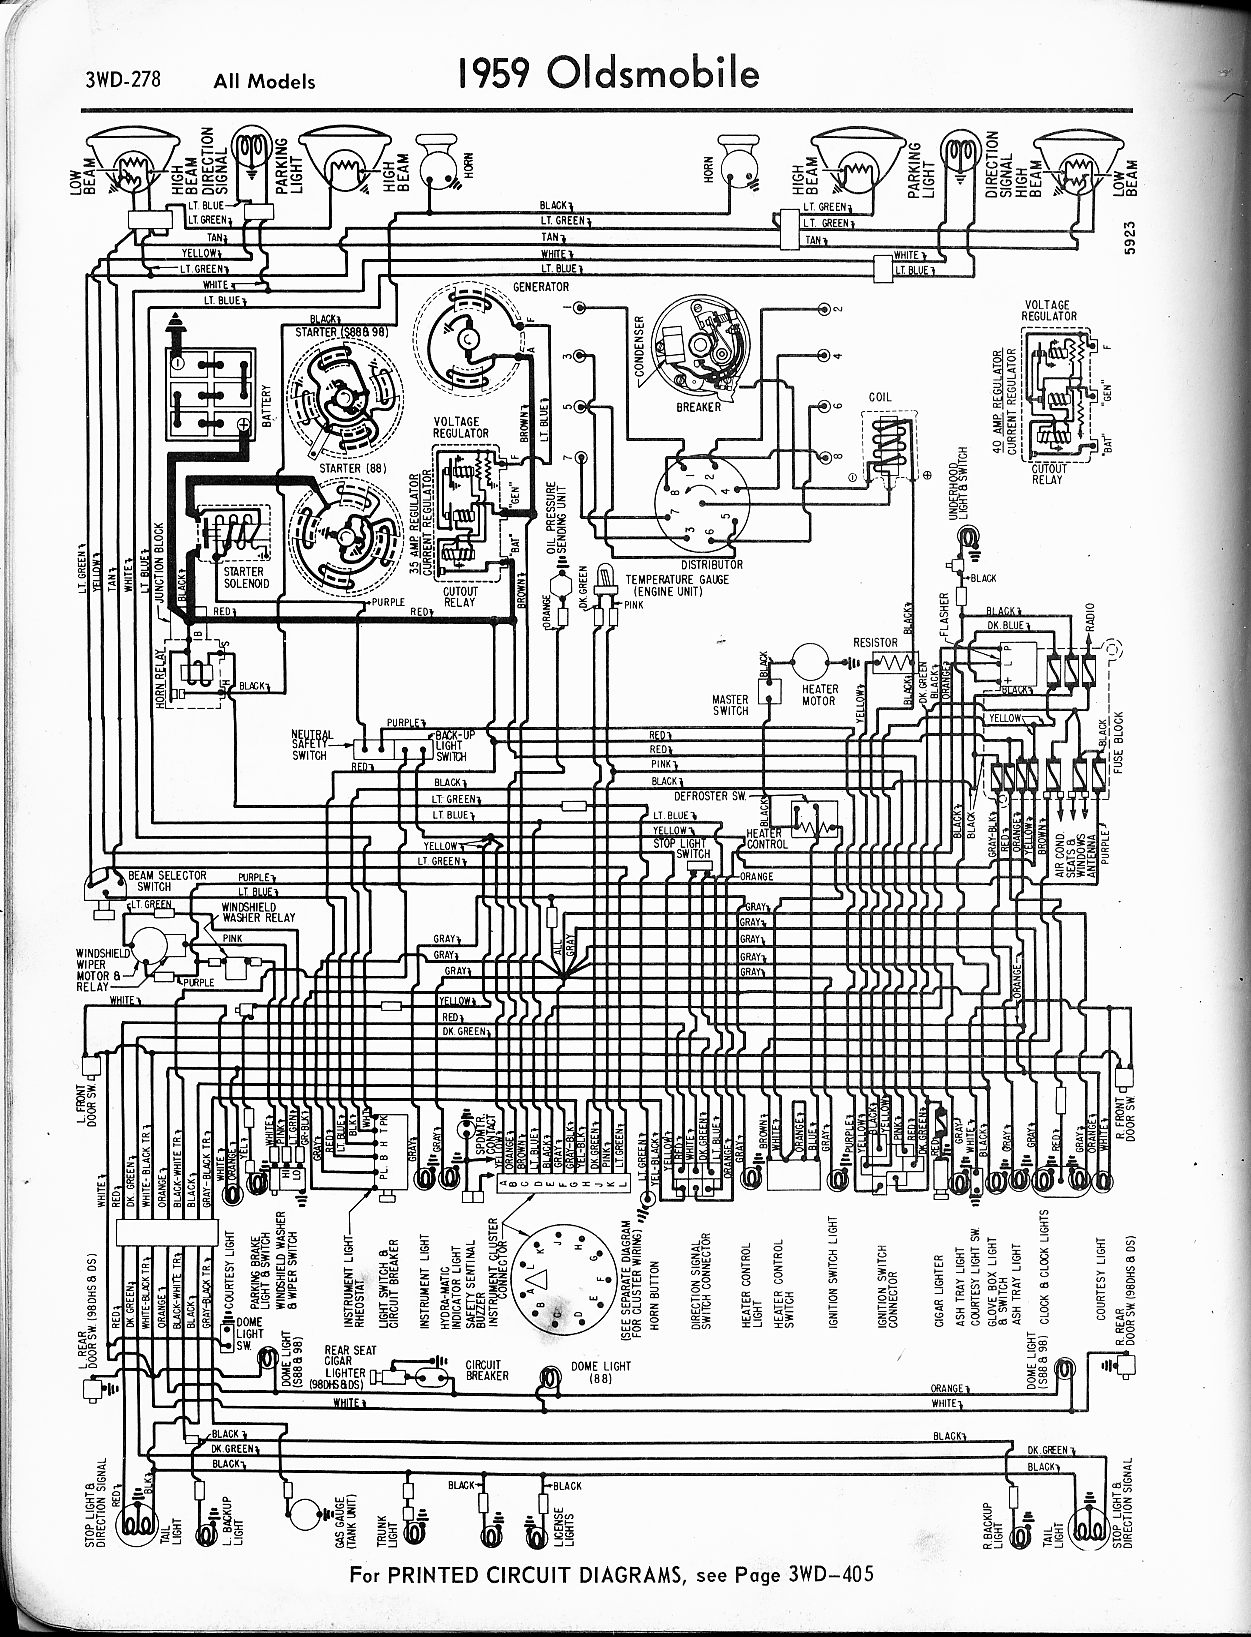 MWire5765 278 oldsmobile wiring diagrams the old car manual project  at readyjetset.co